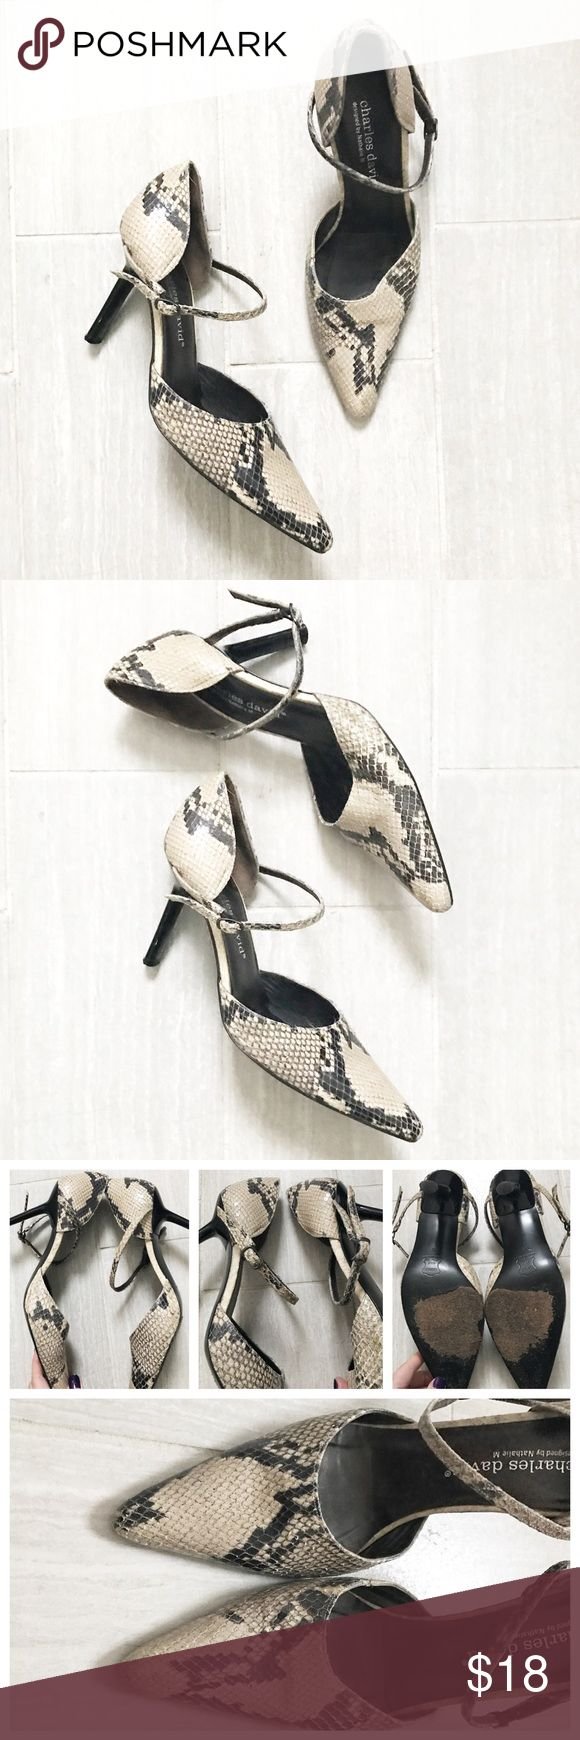 Charles David Snake Skin Pumps Point toe, ankle strap, snake skin print cream and dark grey. Preloved condition - some signs of wear - see photos. Charles David brand. Charles David Shoes